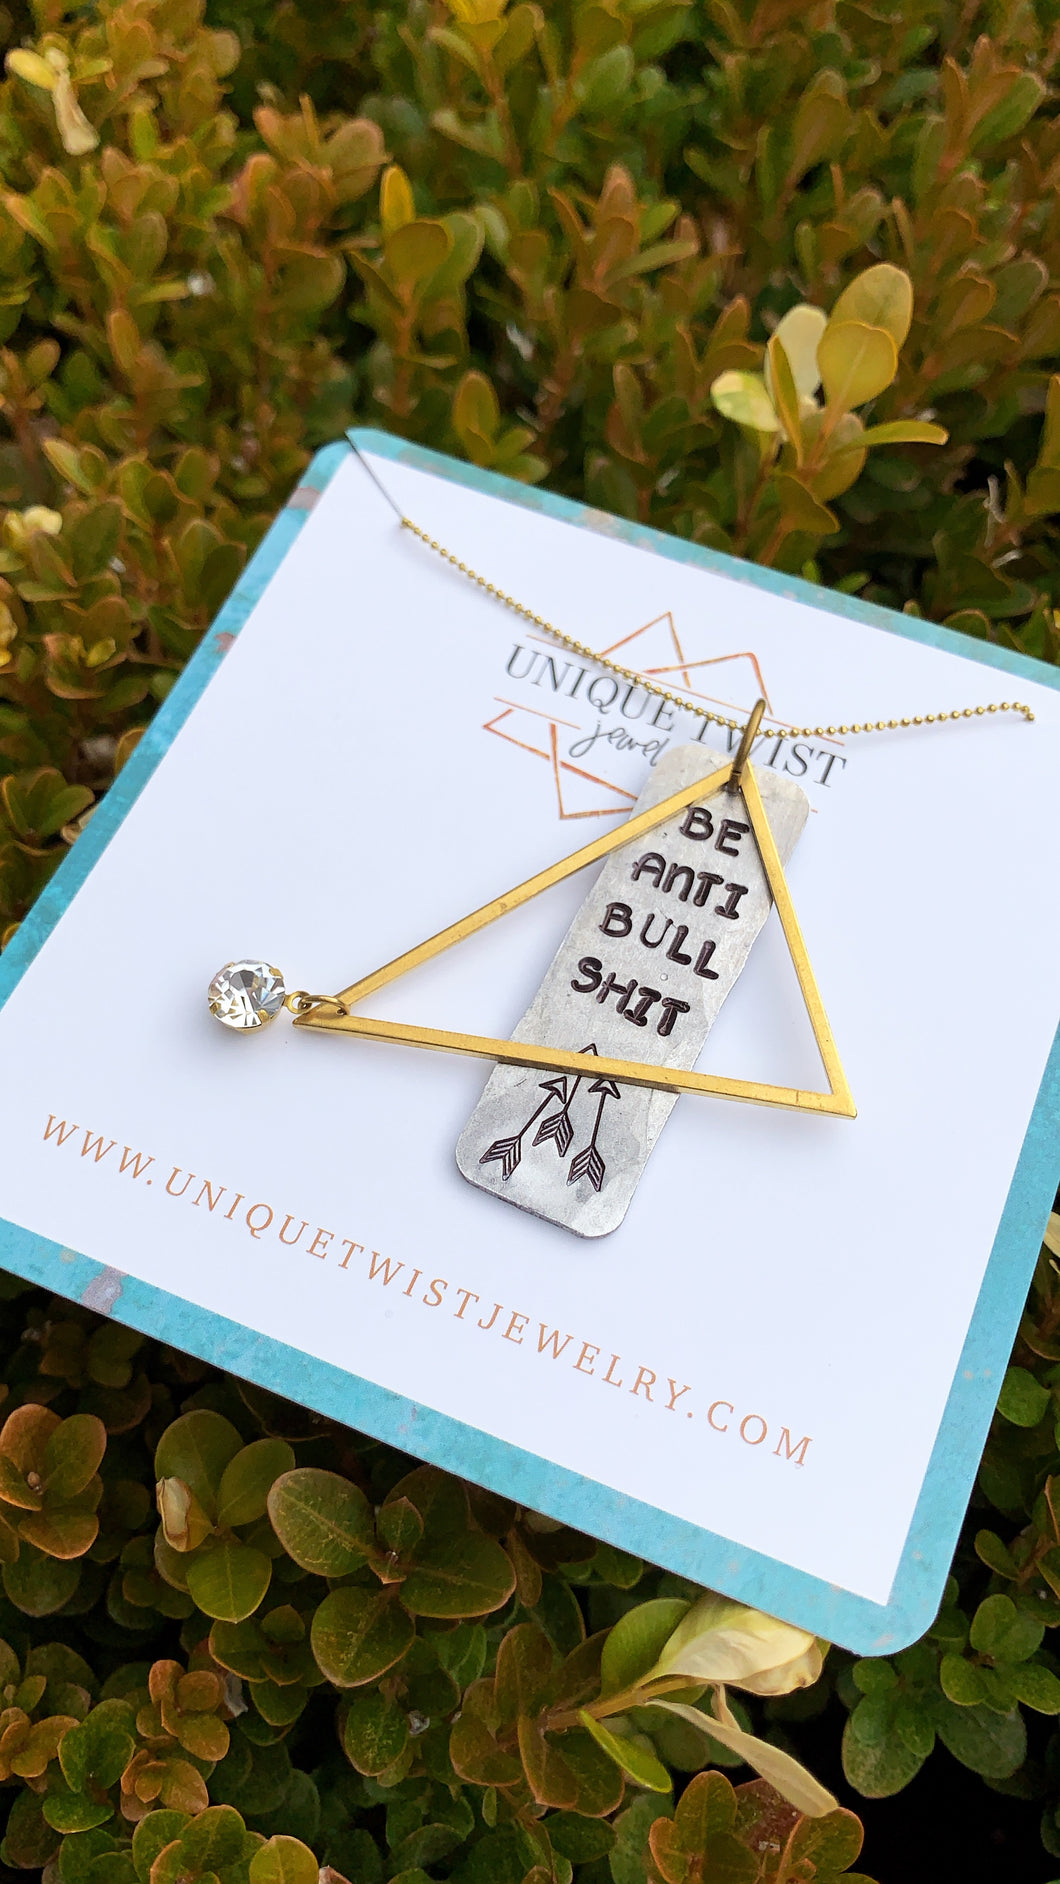 Be Anti Bullshit Charm Necklace